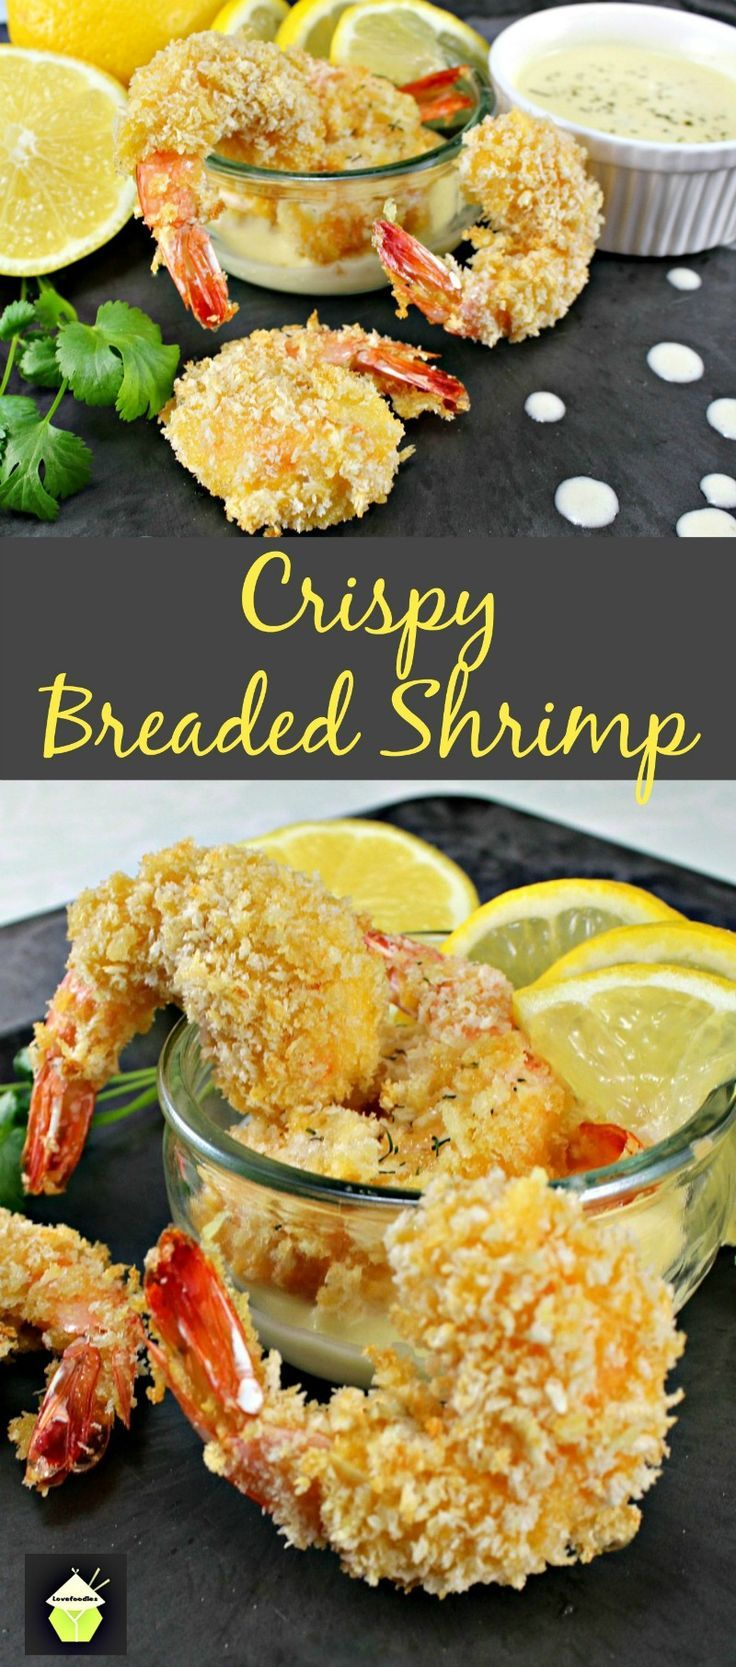 Crispy Breaded Shrimp. A fuss free, easy and quick recipe, serve as a starter or as party food. Oh so good! No frying either! Popular on Game Days too because they are so quick and easy to prepare.